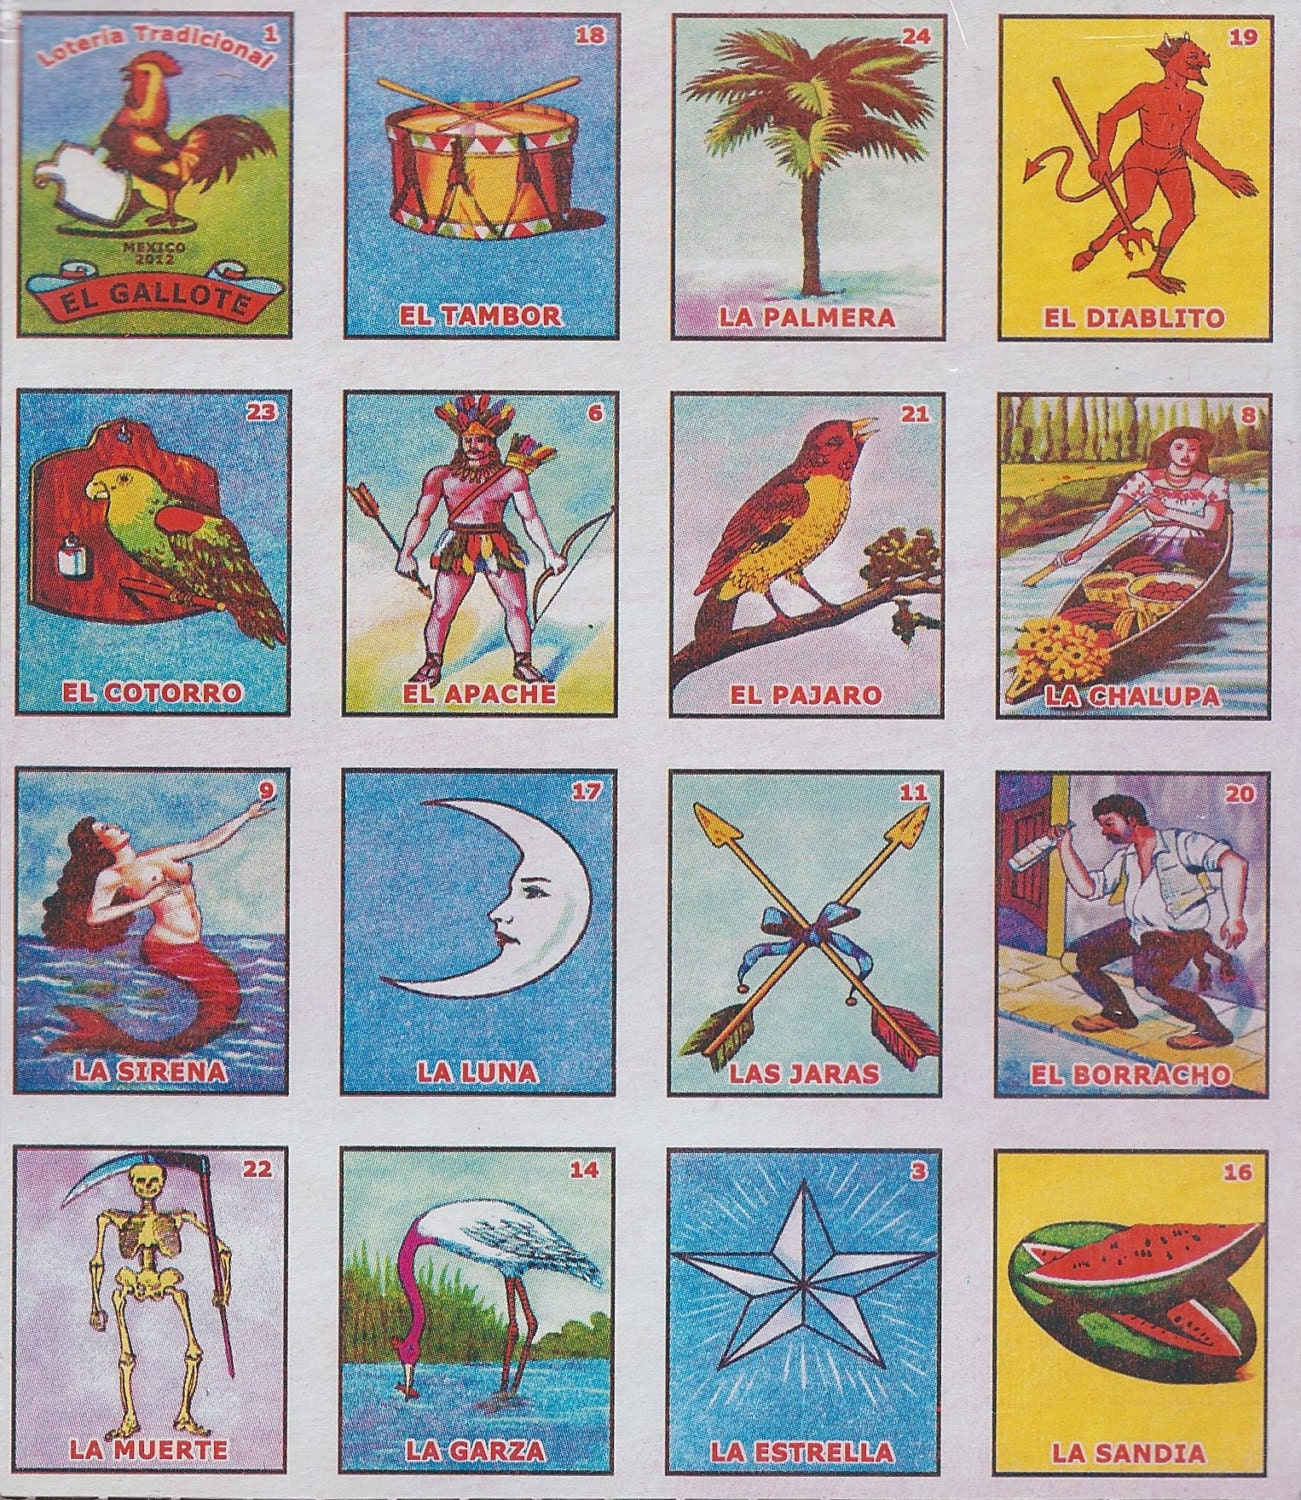 graphic regarding Loteria Game Printable called 10 Printable Loteria Playing cards popularity